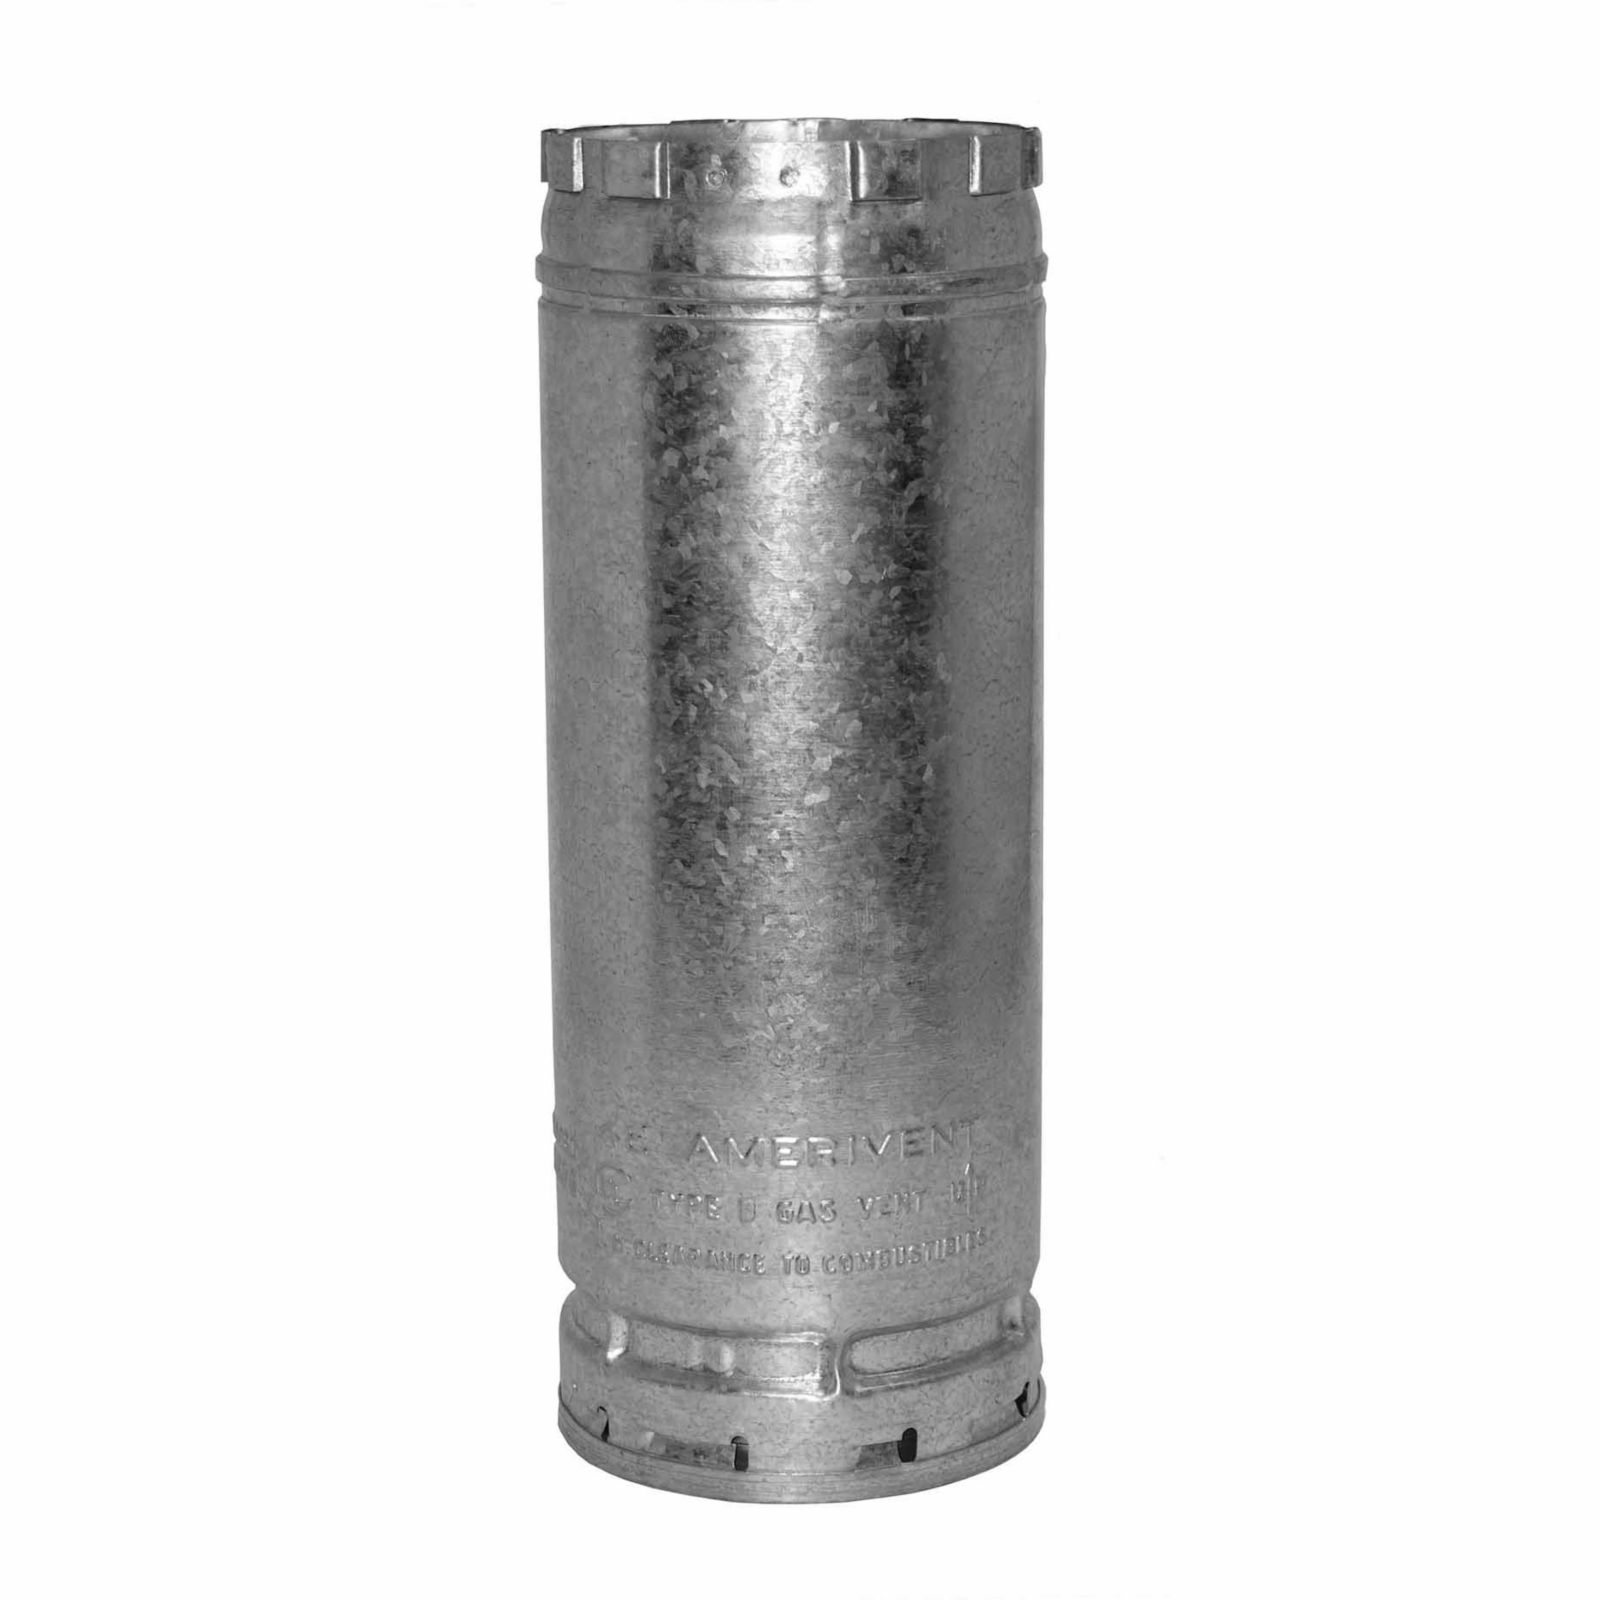 "AmeriVent 4E12 - Pipe Section Type B Gas Vent, 4"" Round X 12"" Length"